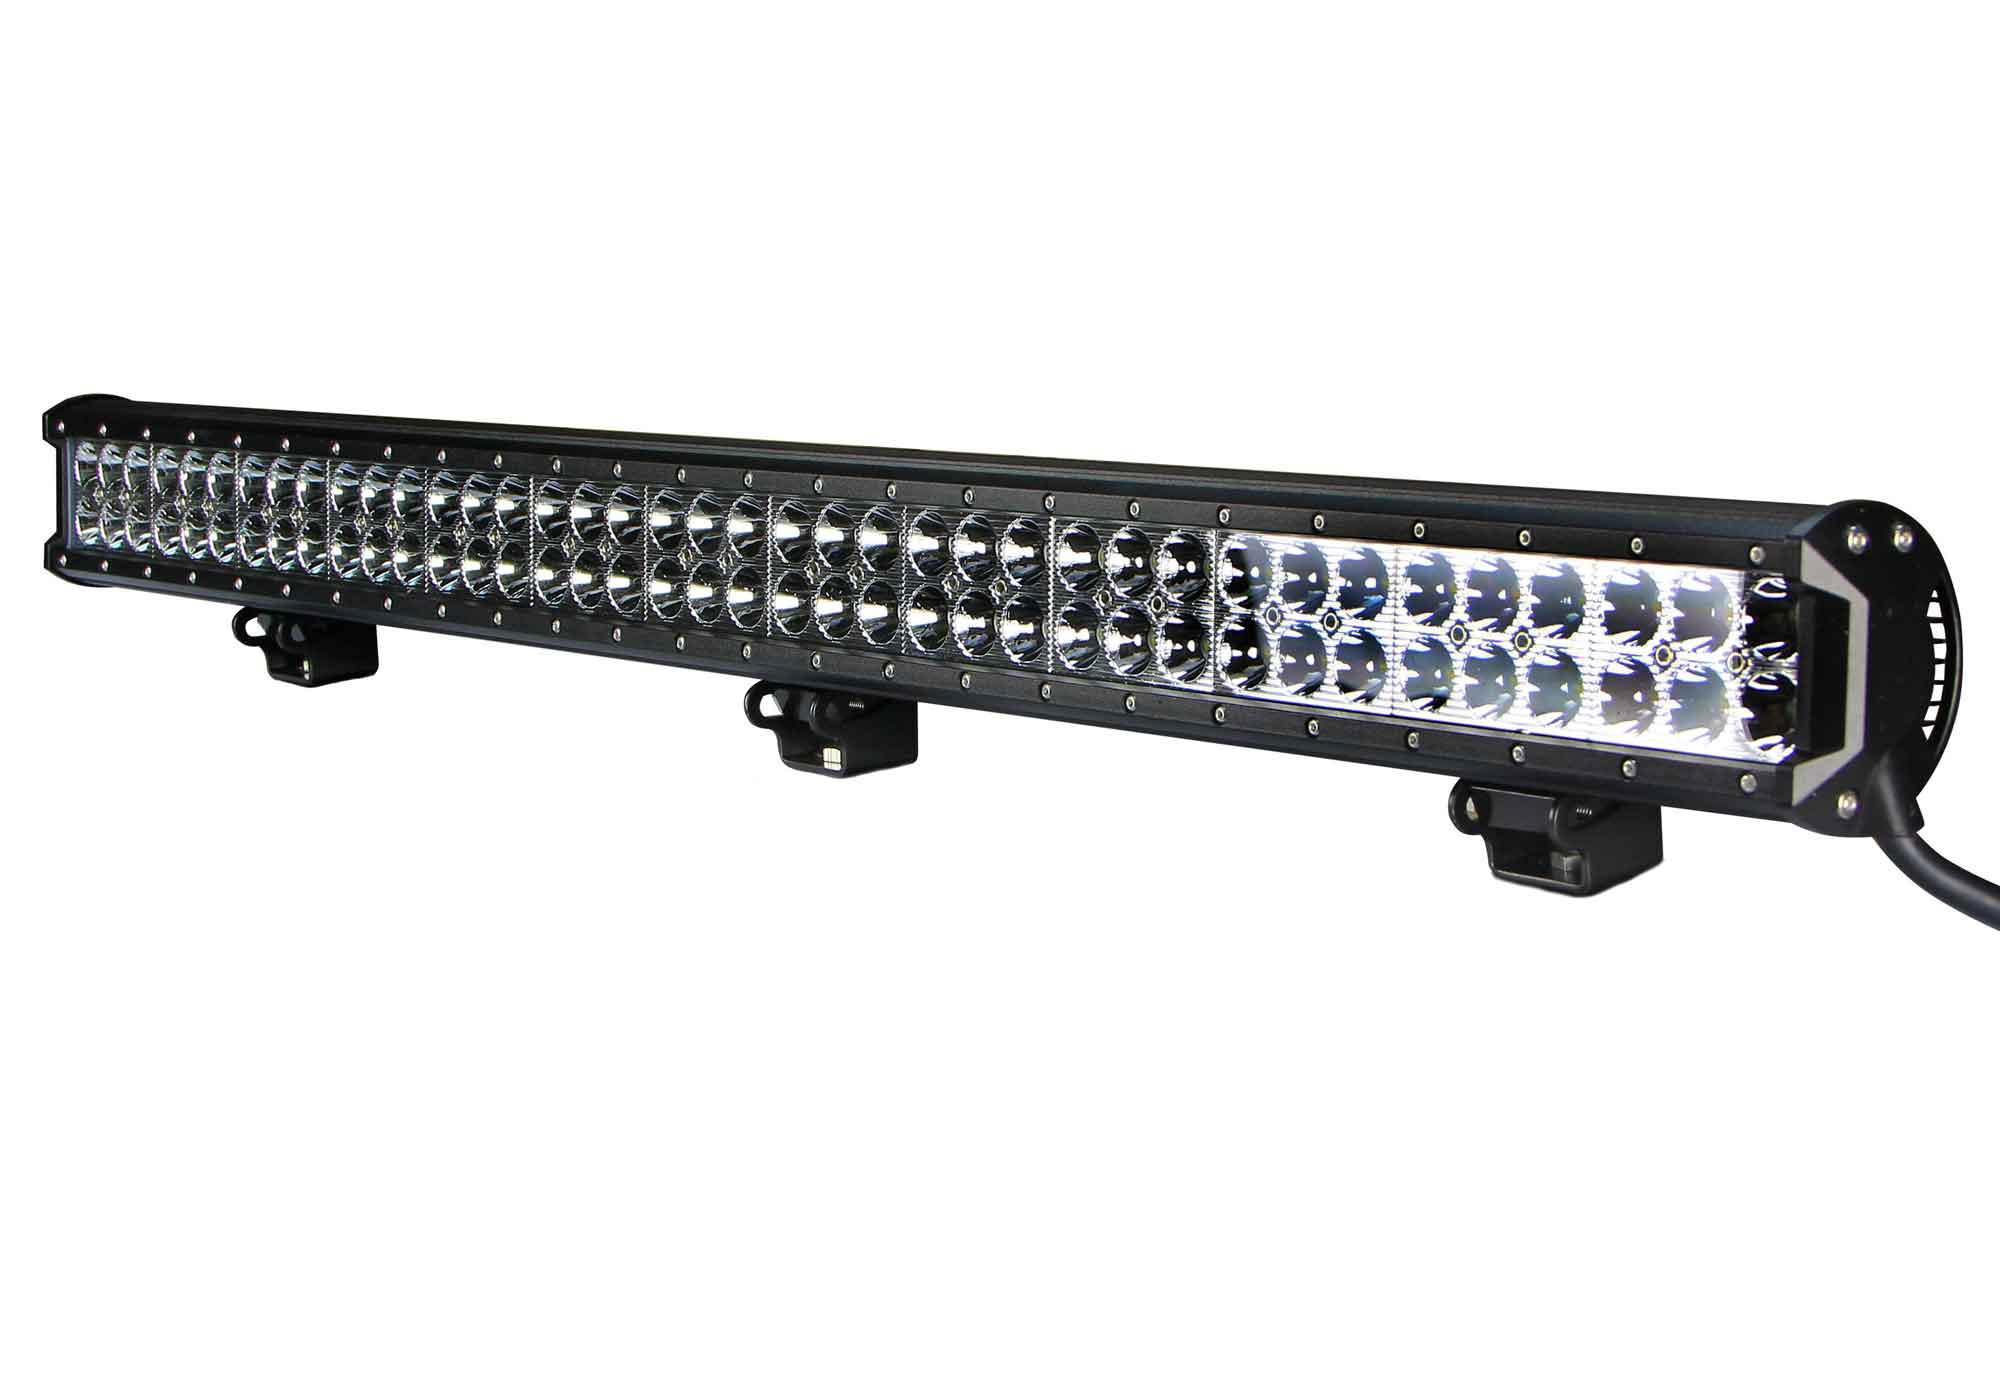 Led Lights For Motorcycle >> Vortex Series LED Light Bar - 36 Inch 234 Watt - Combo - Tuff LED Lights